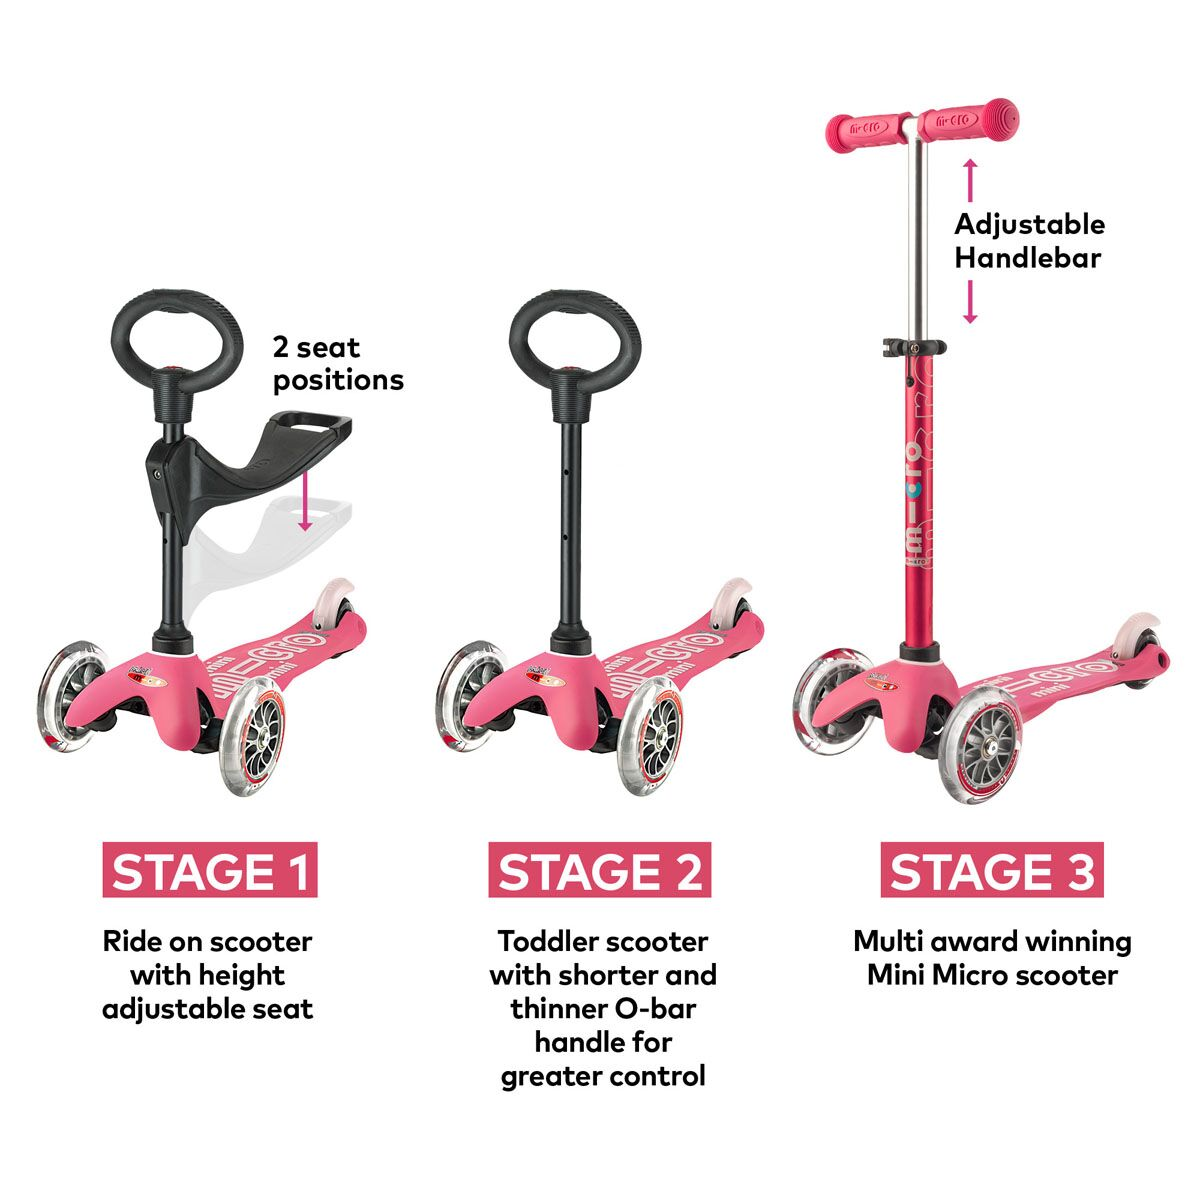 Micro Mini 3-in-1 Deluxe Ride On Seated Scooter - Pink